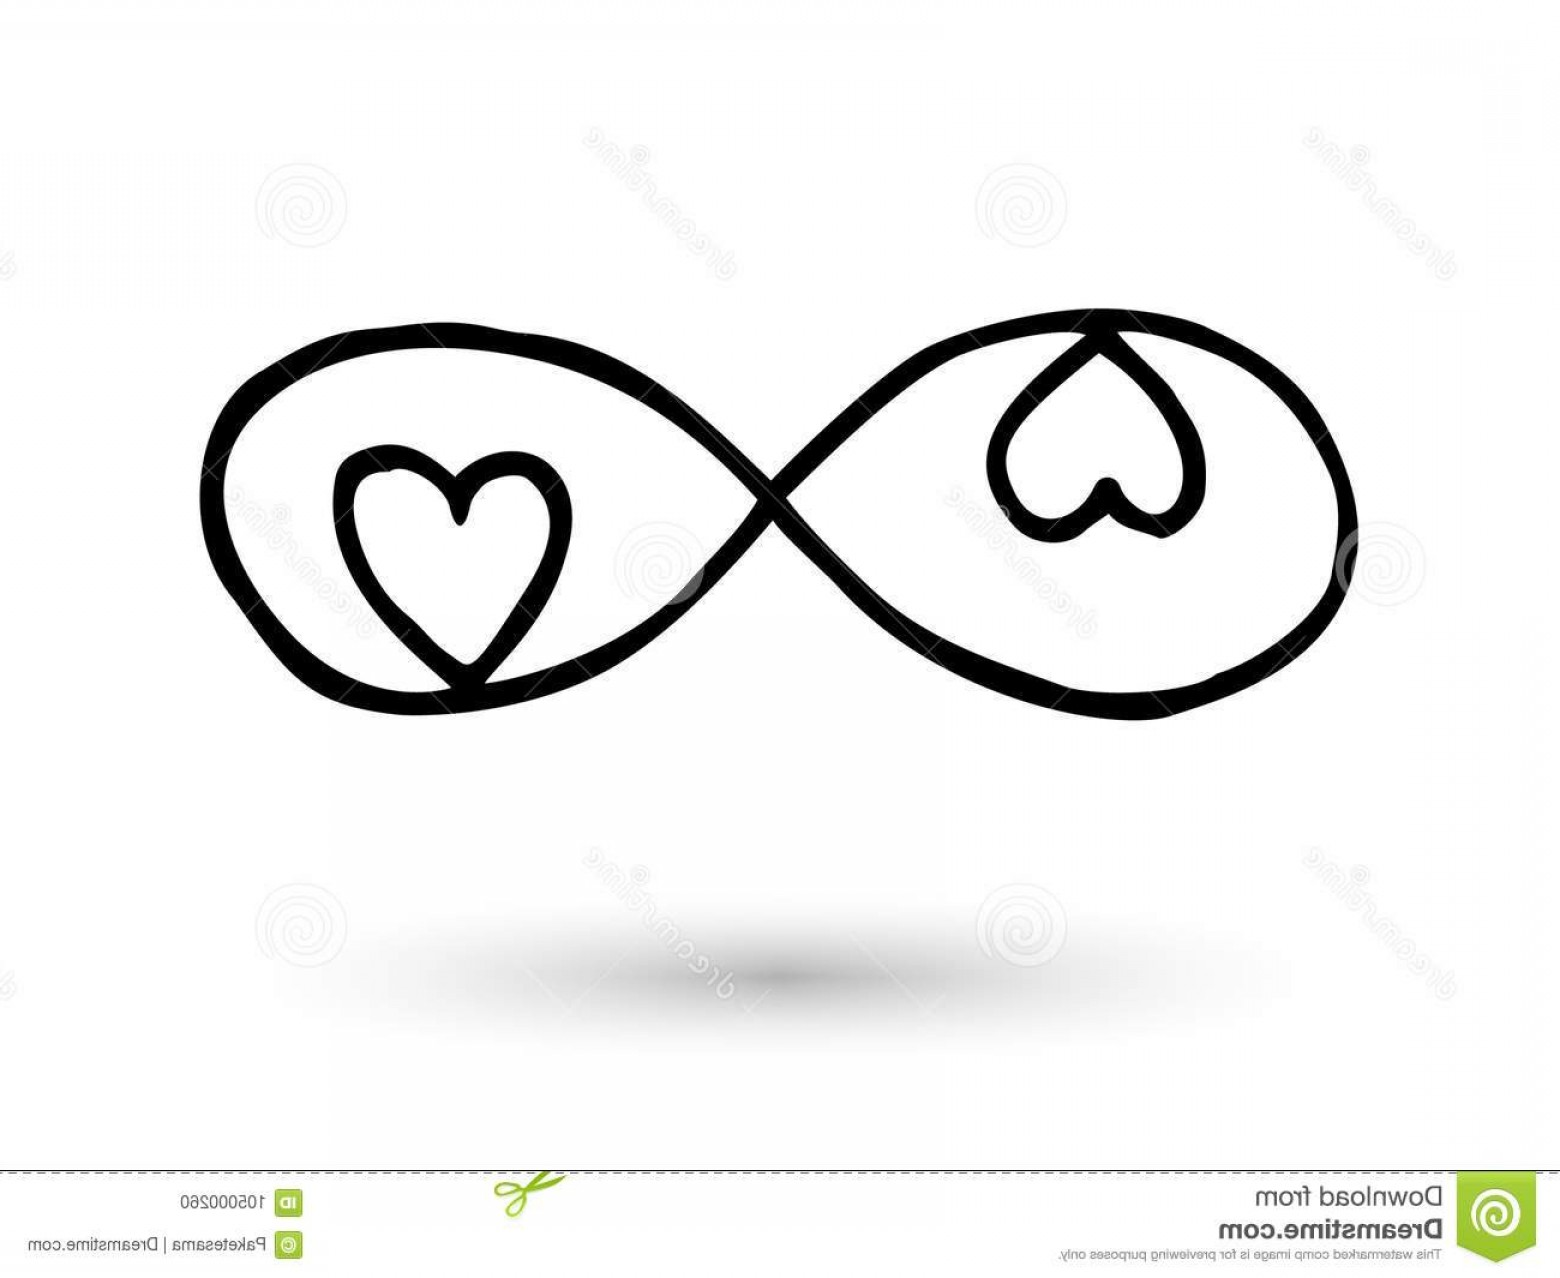 Infinity Heart Tattoo Vector: Infinity Symbol Hand Drawn Ink Brush Infinity Symbol Hearts Icon Hand Drawn Ink Brush Modern Doodle Outline Image